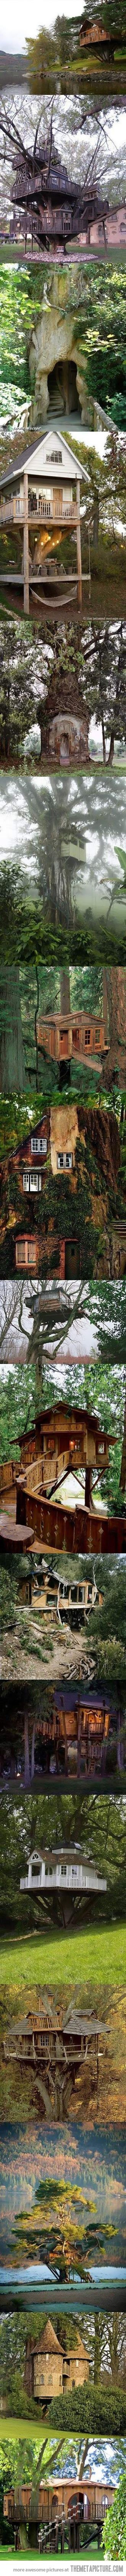 Oh my goodness YES. I would gladly live in any and all of these houses forever.